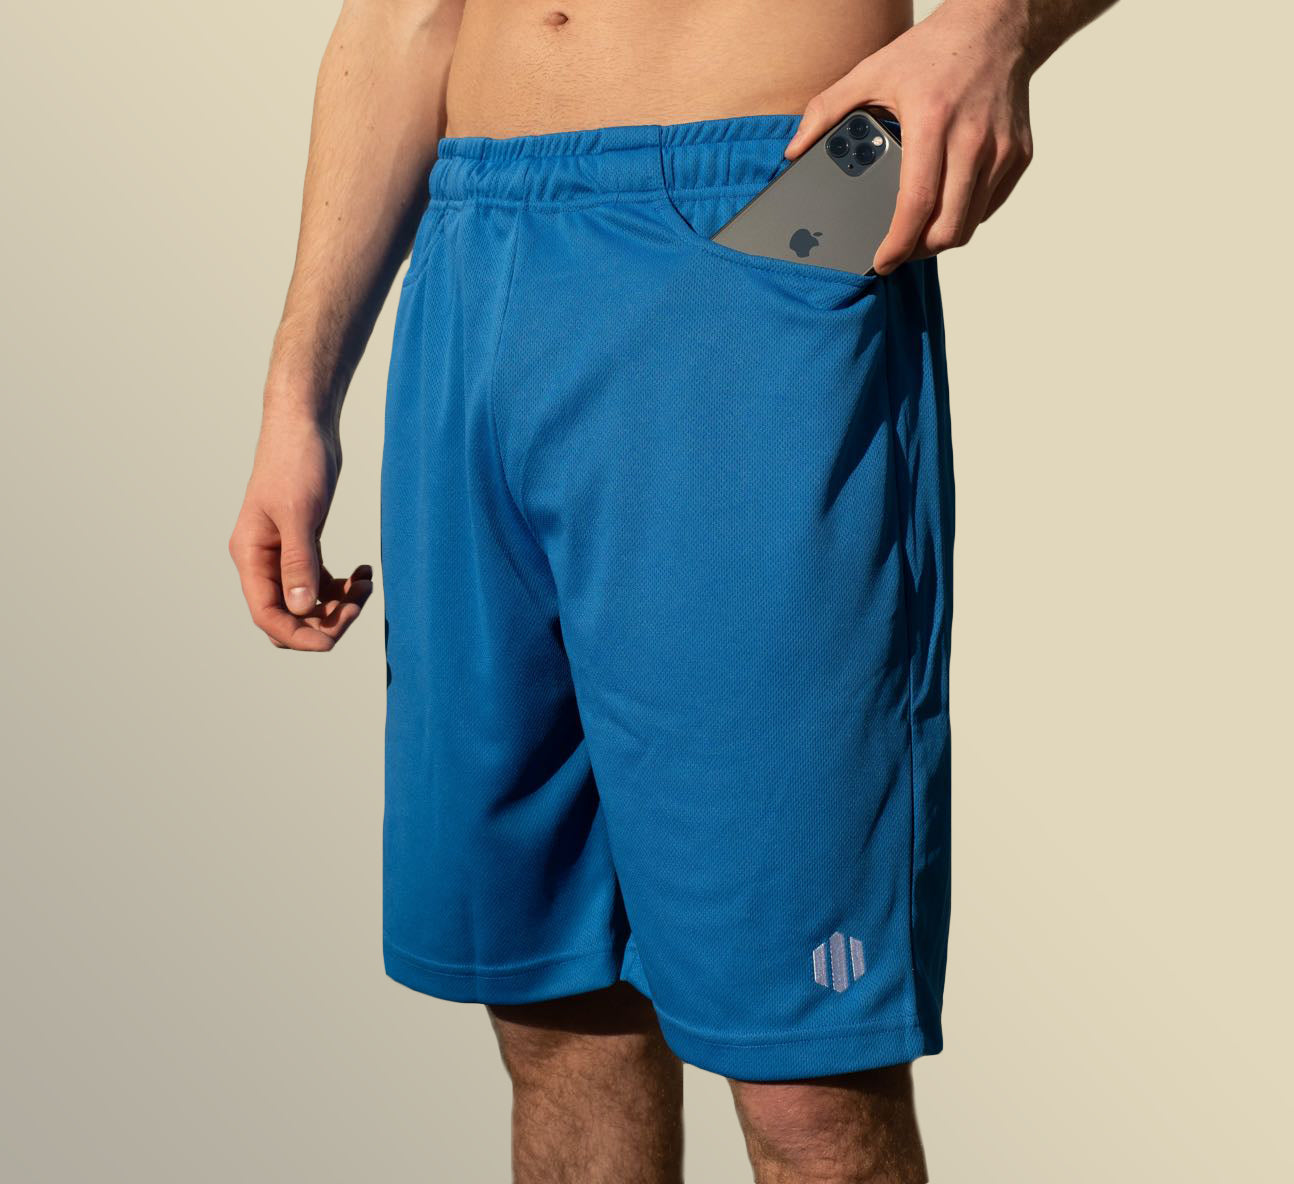 Mens athletic shorts with pockets